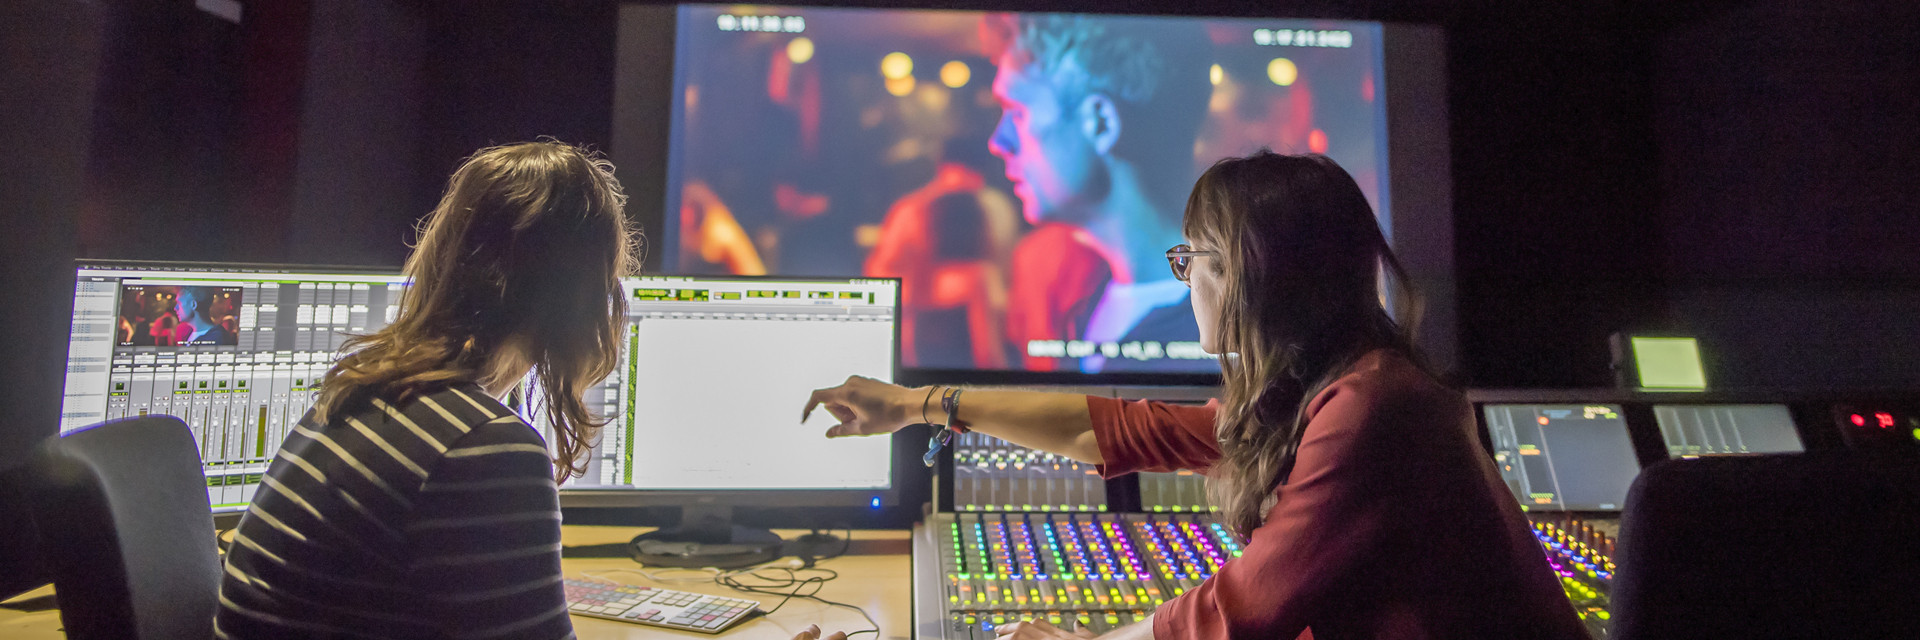 Sound Design for Film and Television  28d53a19b68